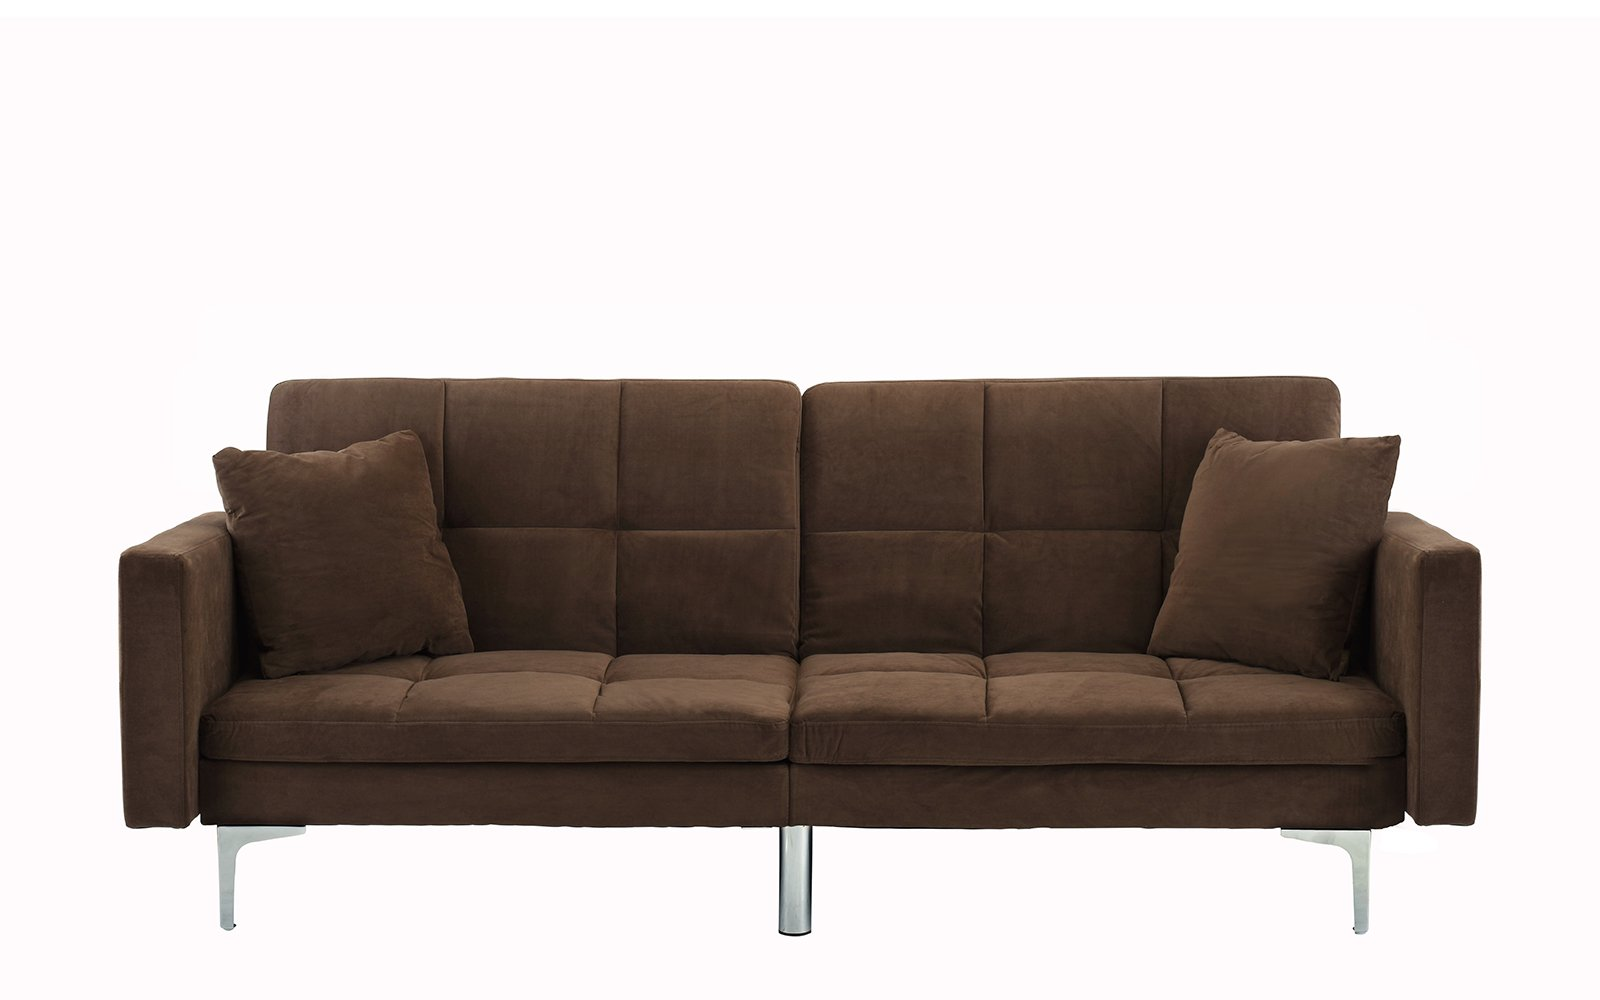 Housel Living Futon, Brown by Housel Living